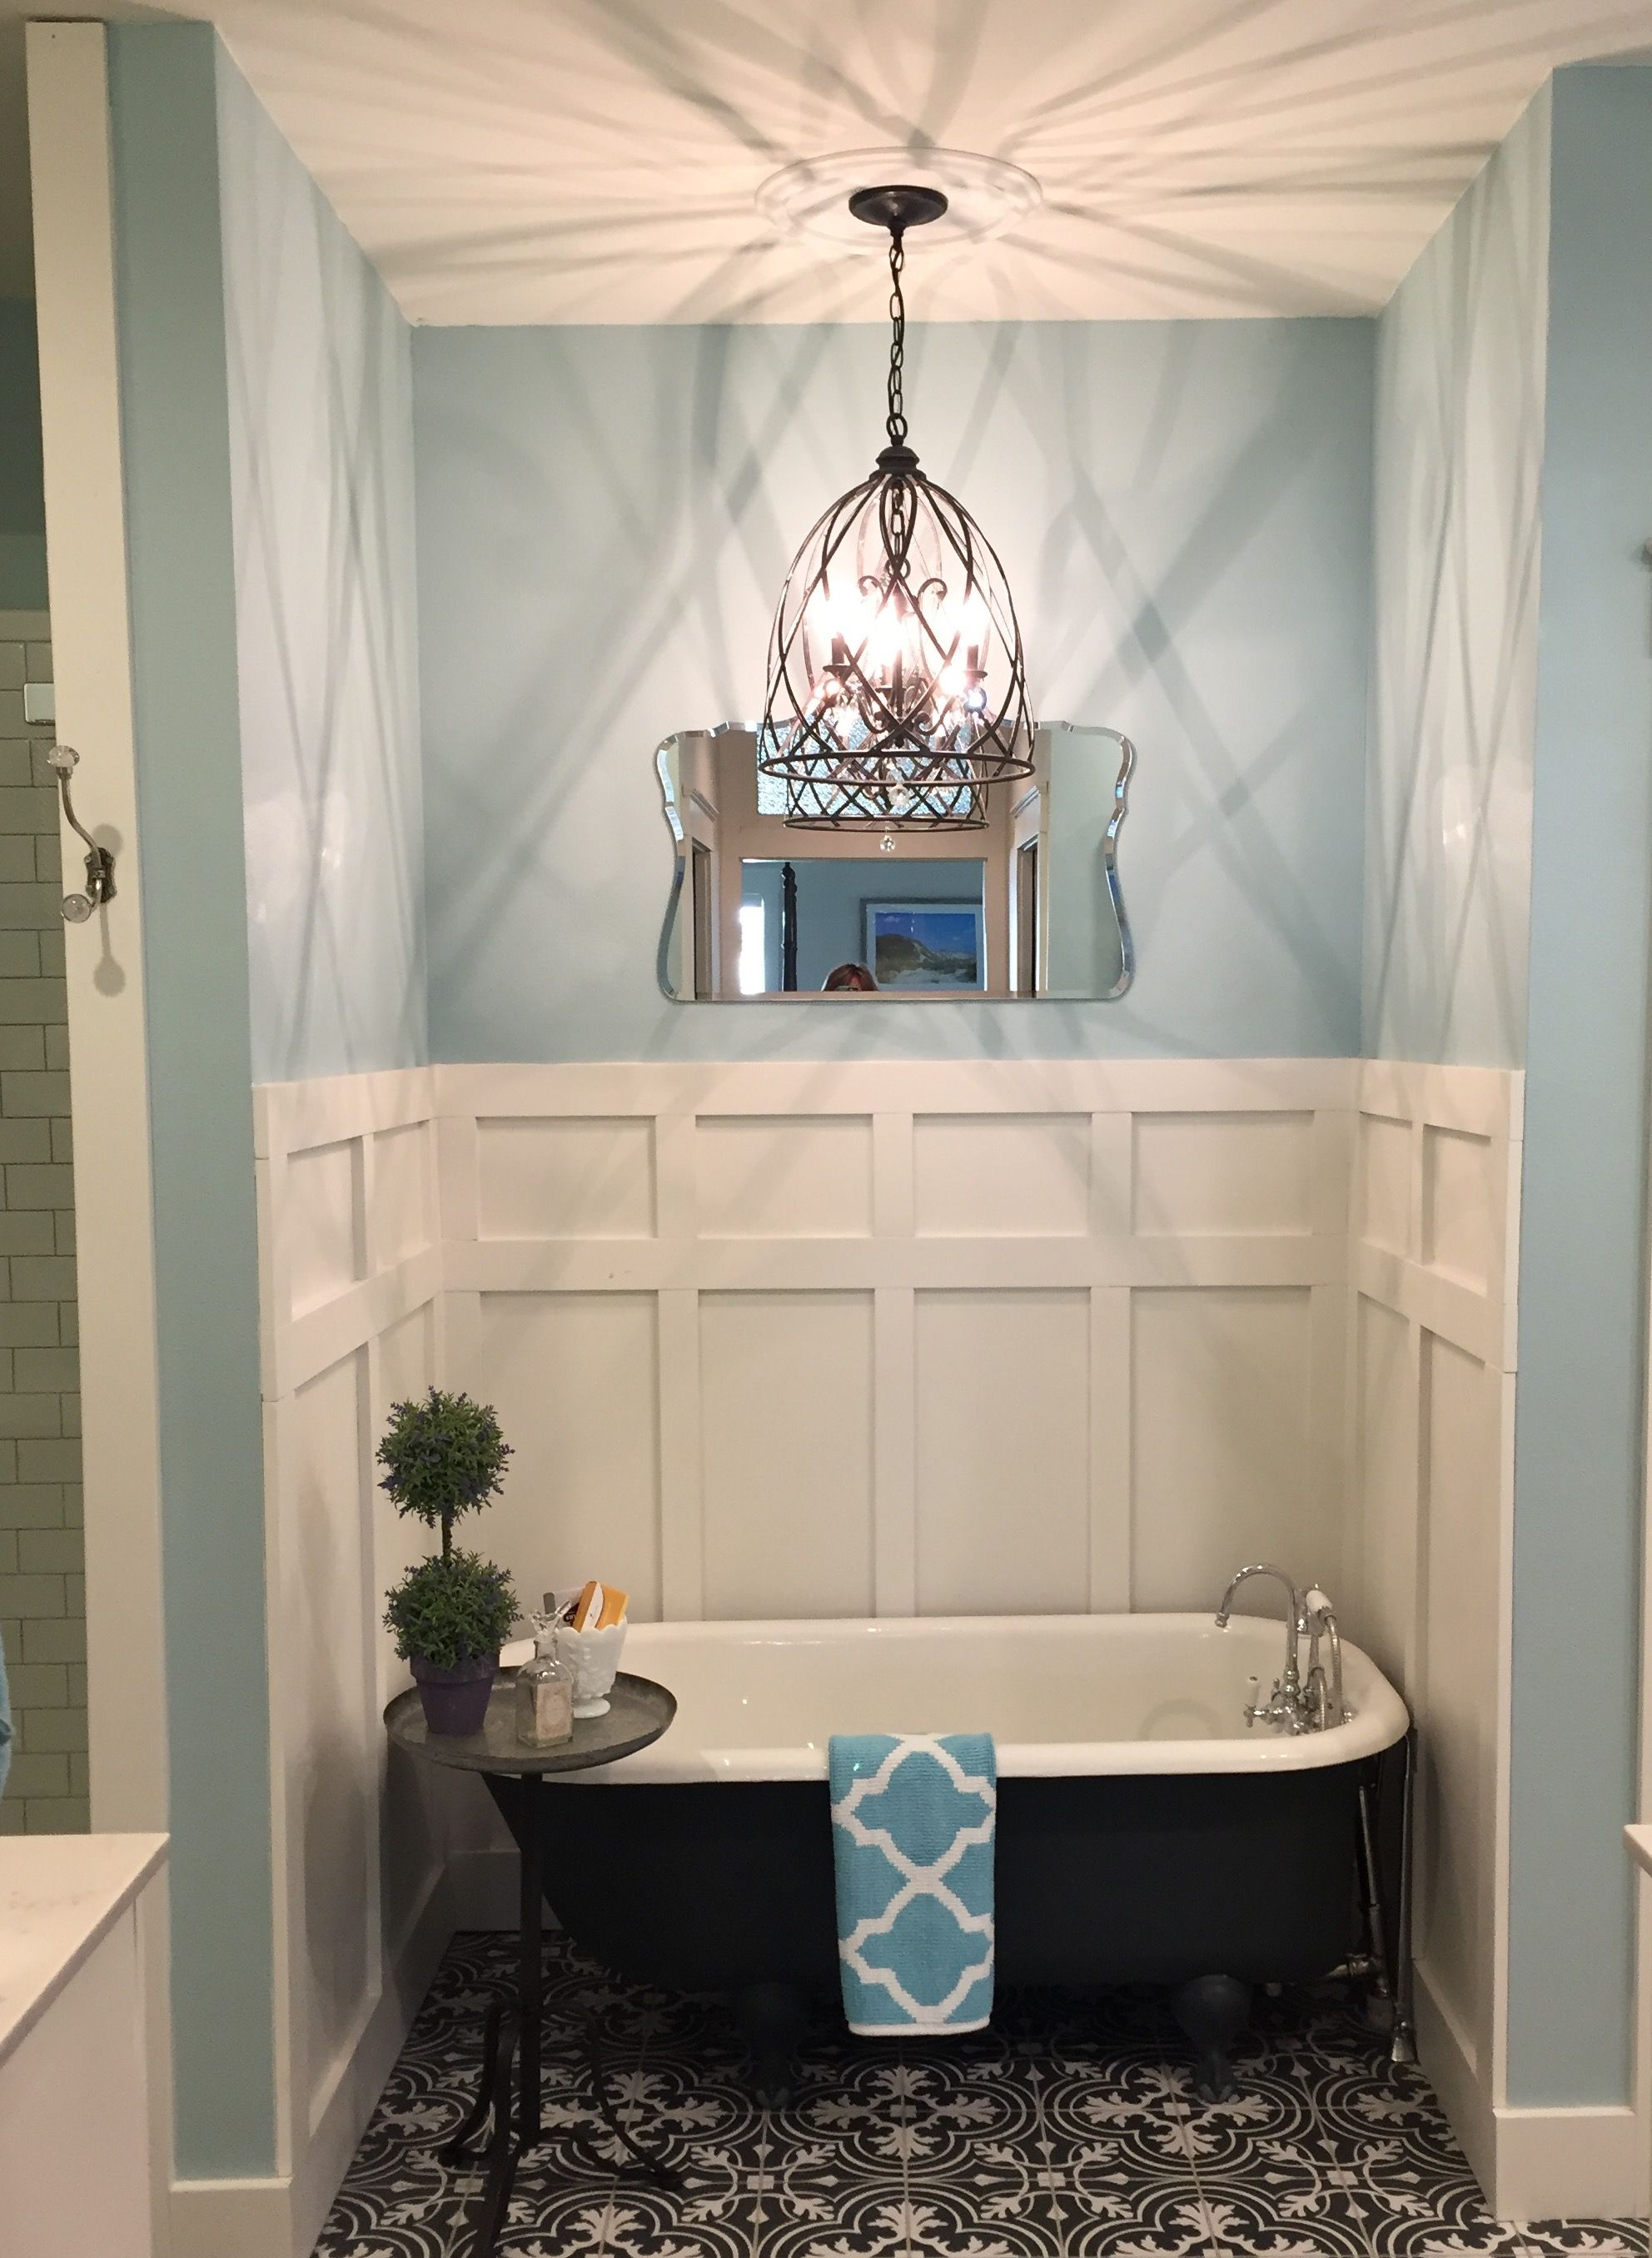 Refinished Claw Foot Tub Cement Tiles Wrought Iron Light Fixture Board Batten Master B Clawfoot Tub Bathroom Wrought Iron Light Fixtures Rustic Bathrooms